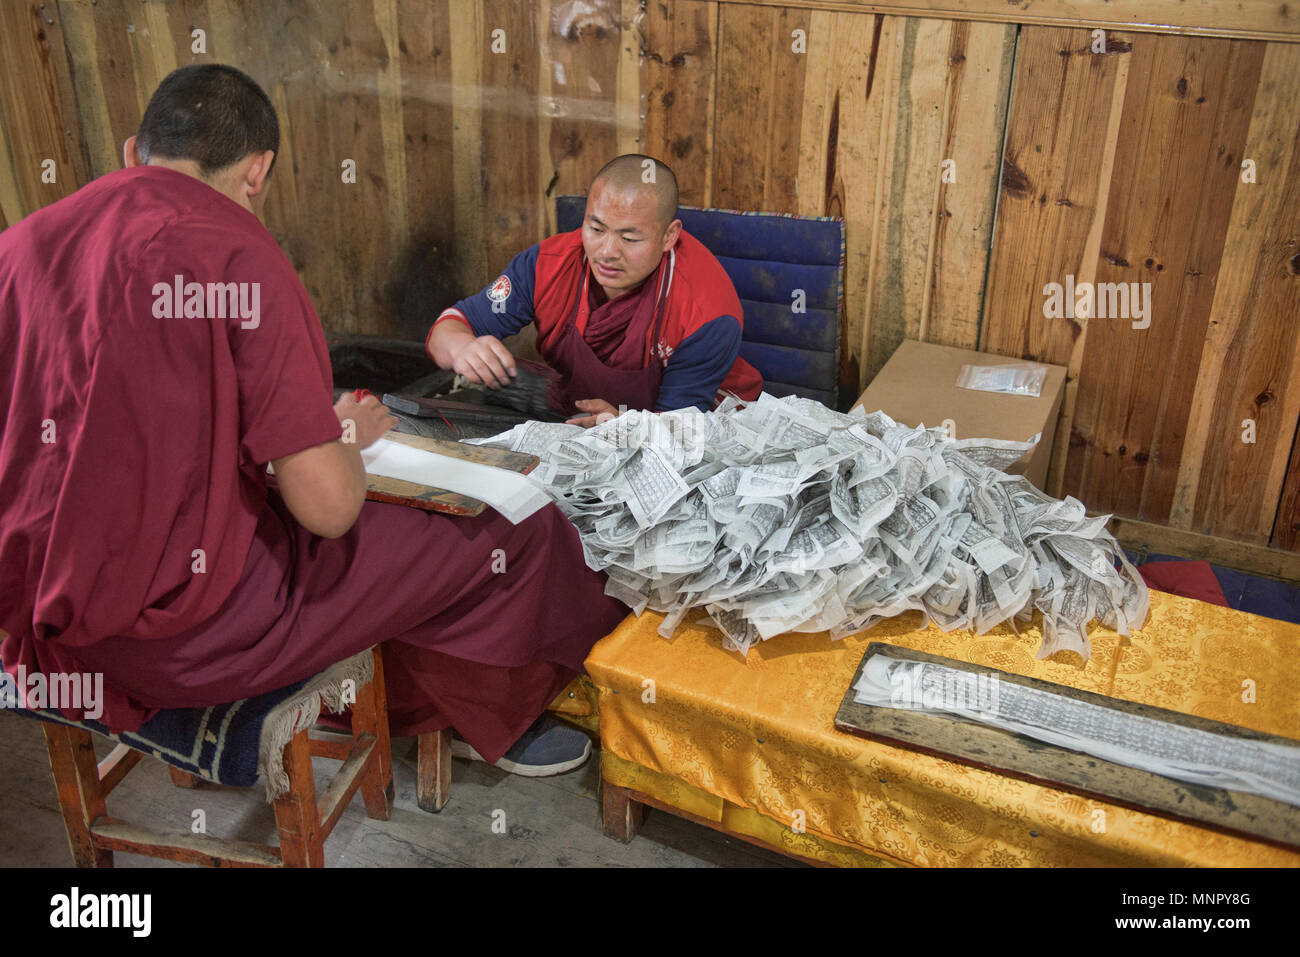 Monks making handmade paper scriptures and woodblock prints inside the holy Bakong Scripture Printing Press Monastery in Dege, Sichuan, China - Stock Image